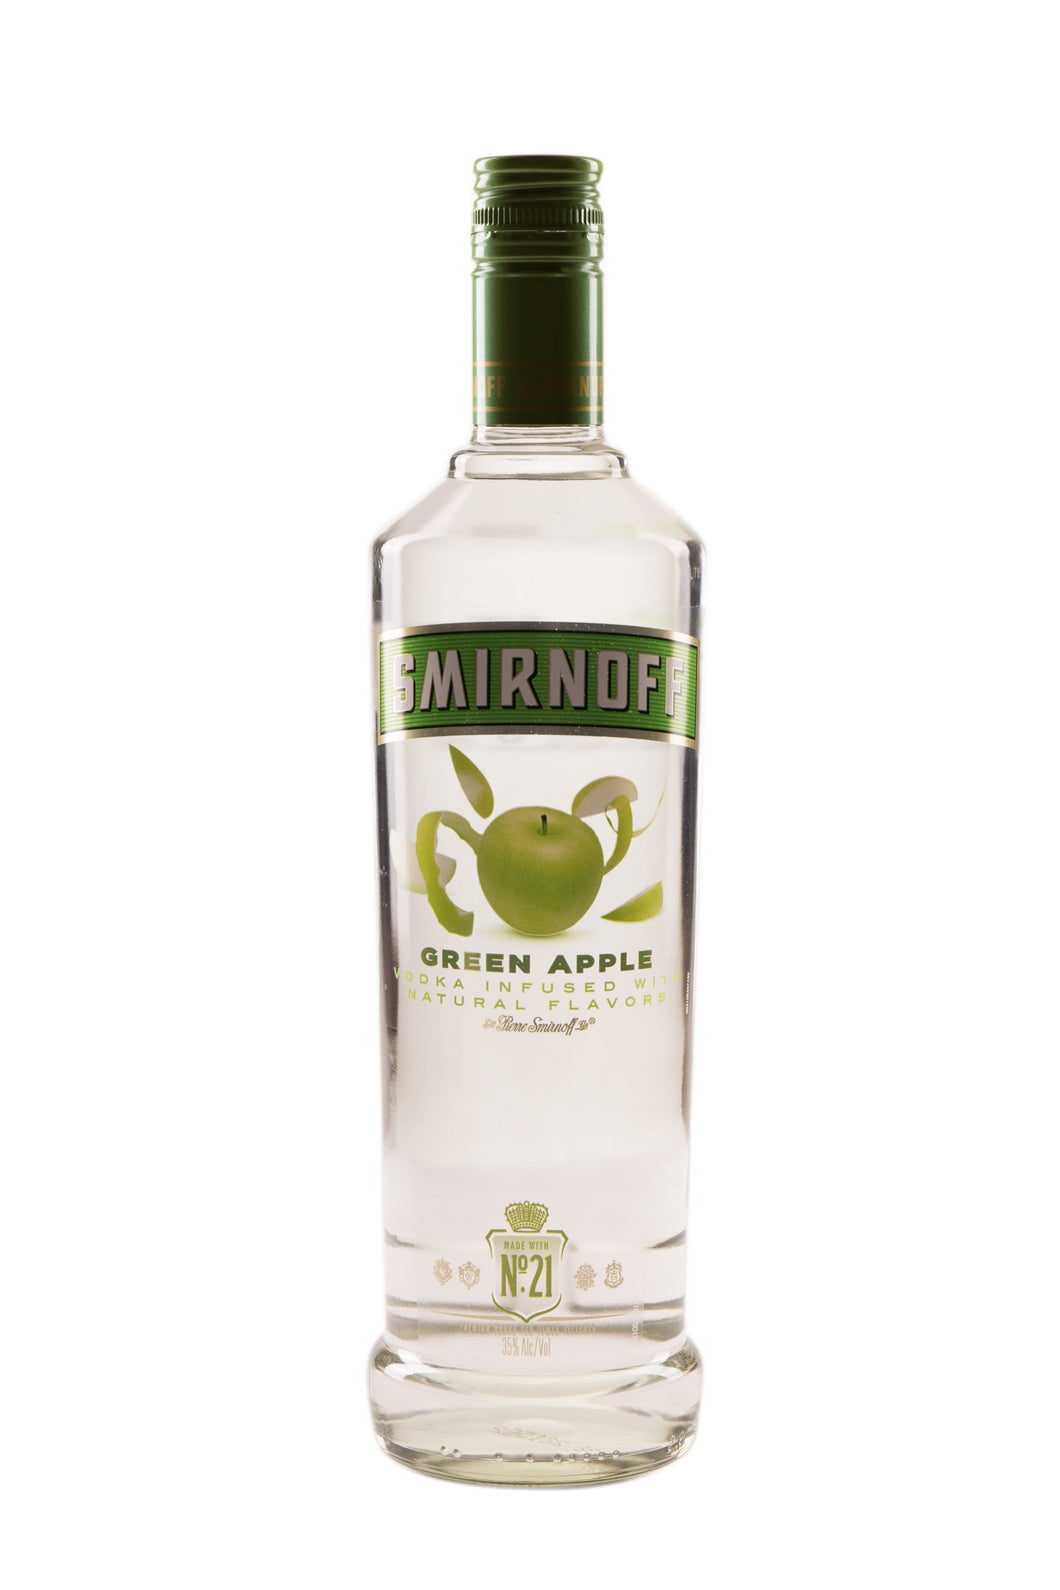 Smirnoff Green Apple 750